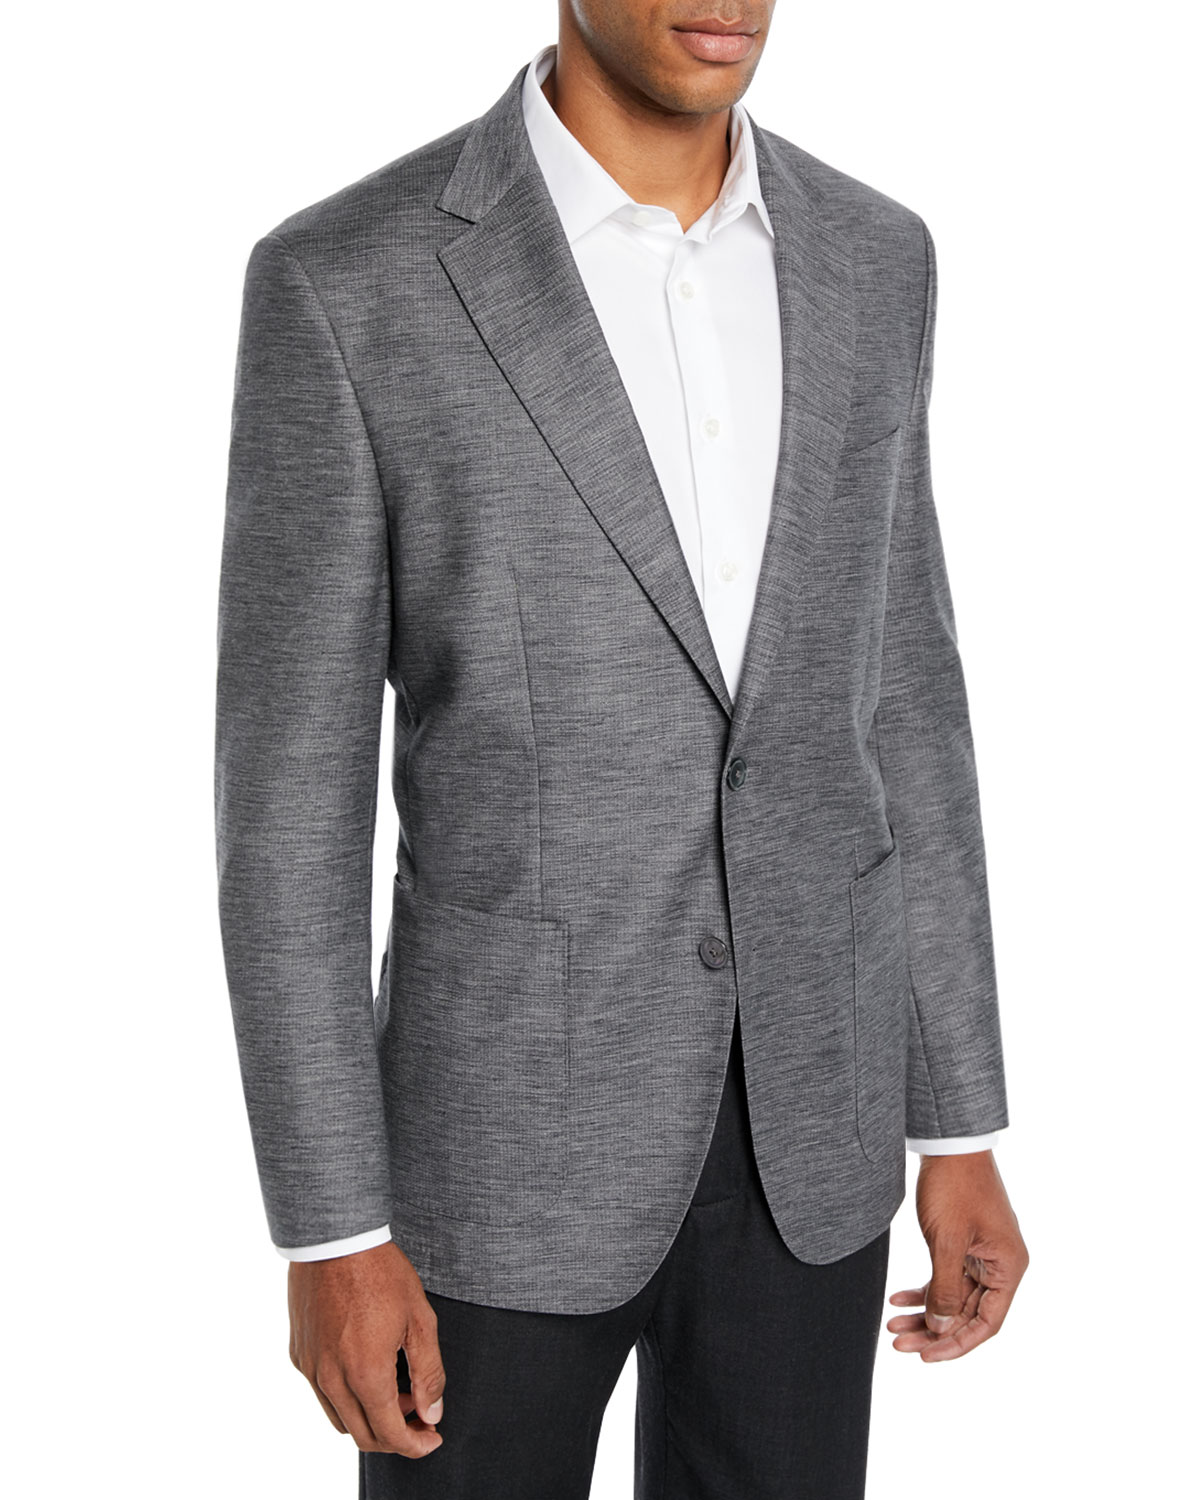 92c5b846f0e BOSS Men s Heathered Patch-Pocket Blazer Jacket